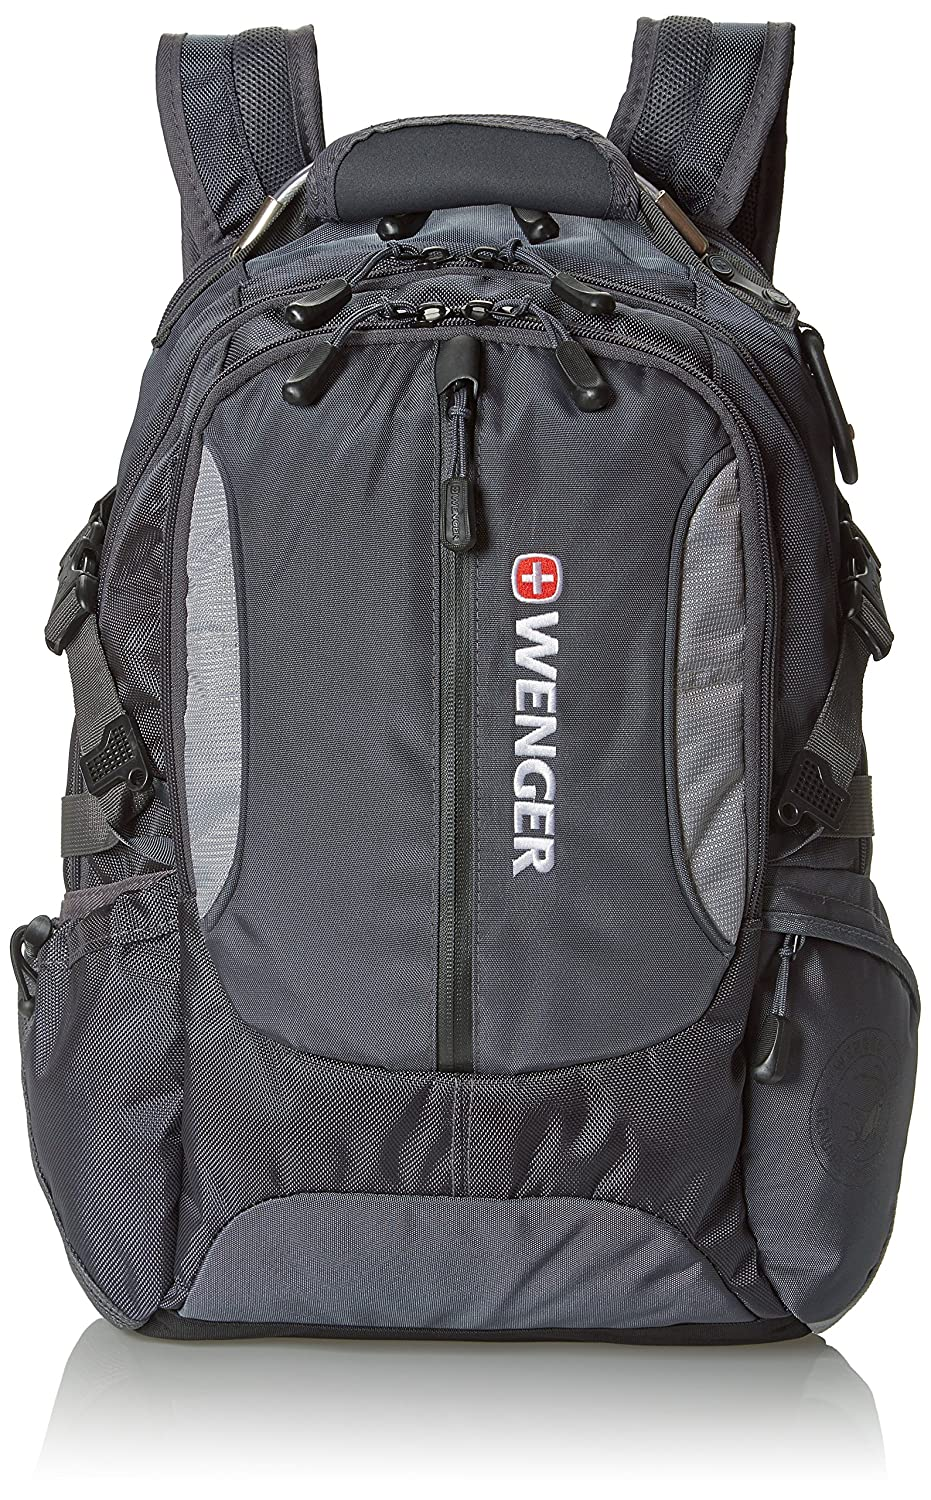 5ae97499c1 Amazon.com  Wenger SA1537 Grey Computer Backpack - Fits Most 15 Inch  Laptops and Tablets  Computers   Accessories